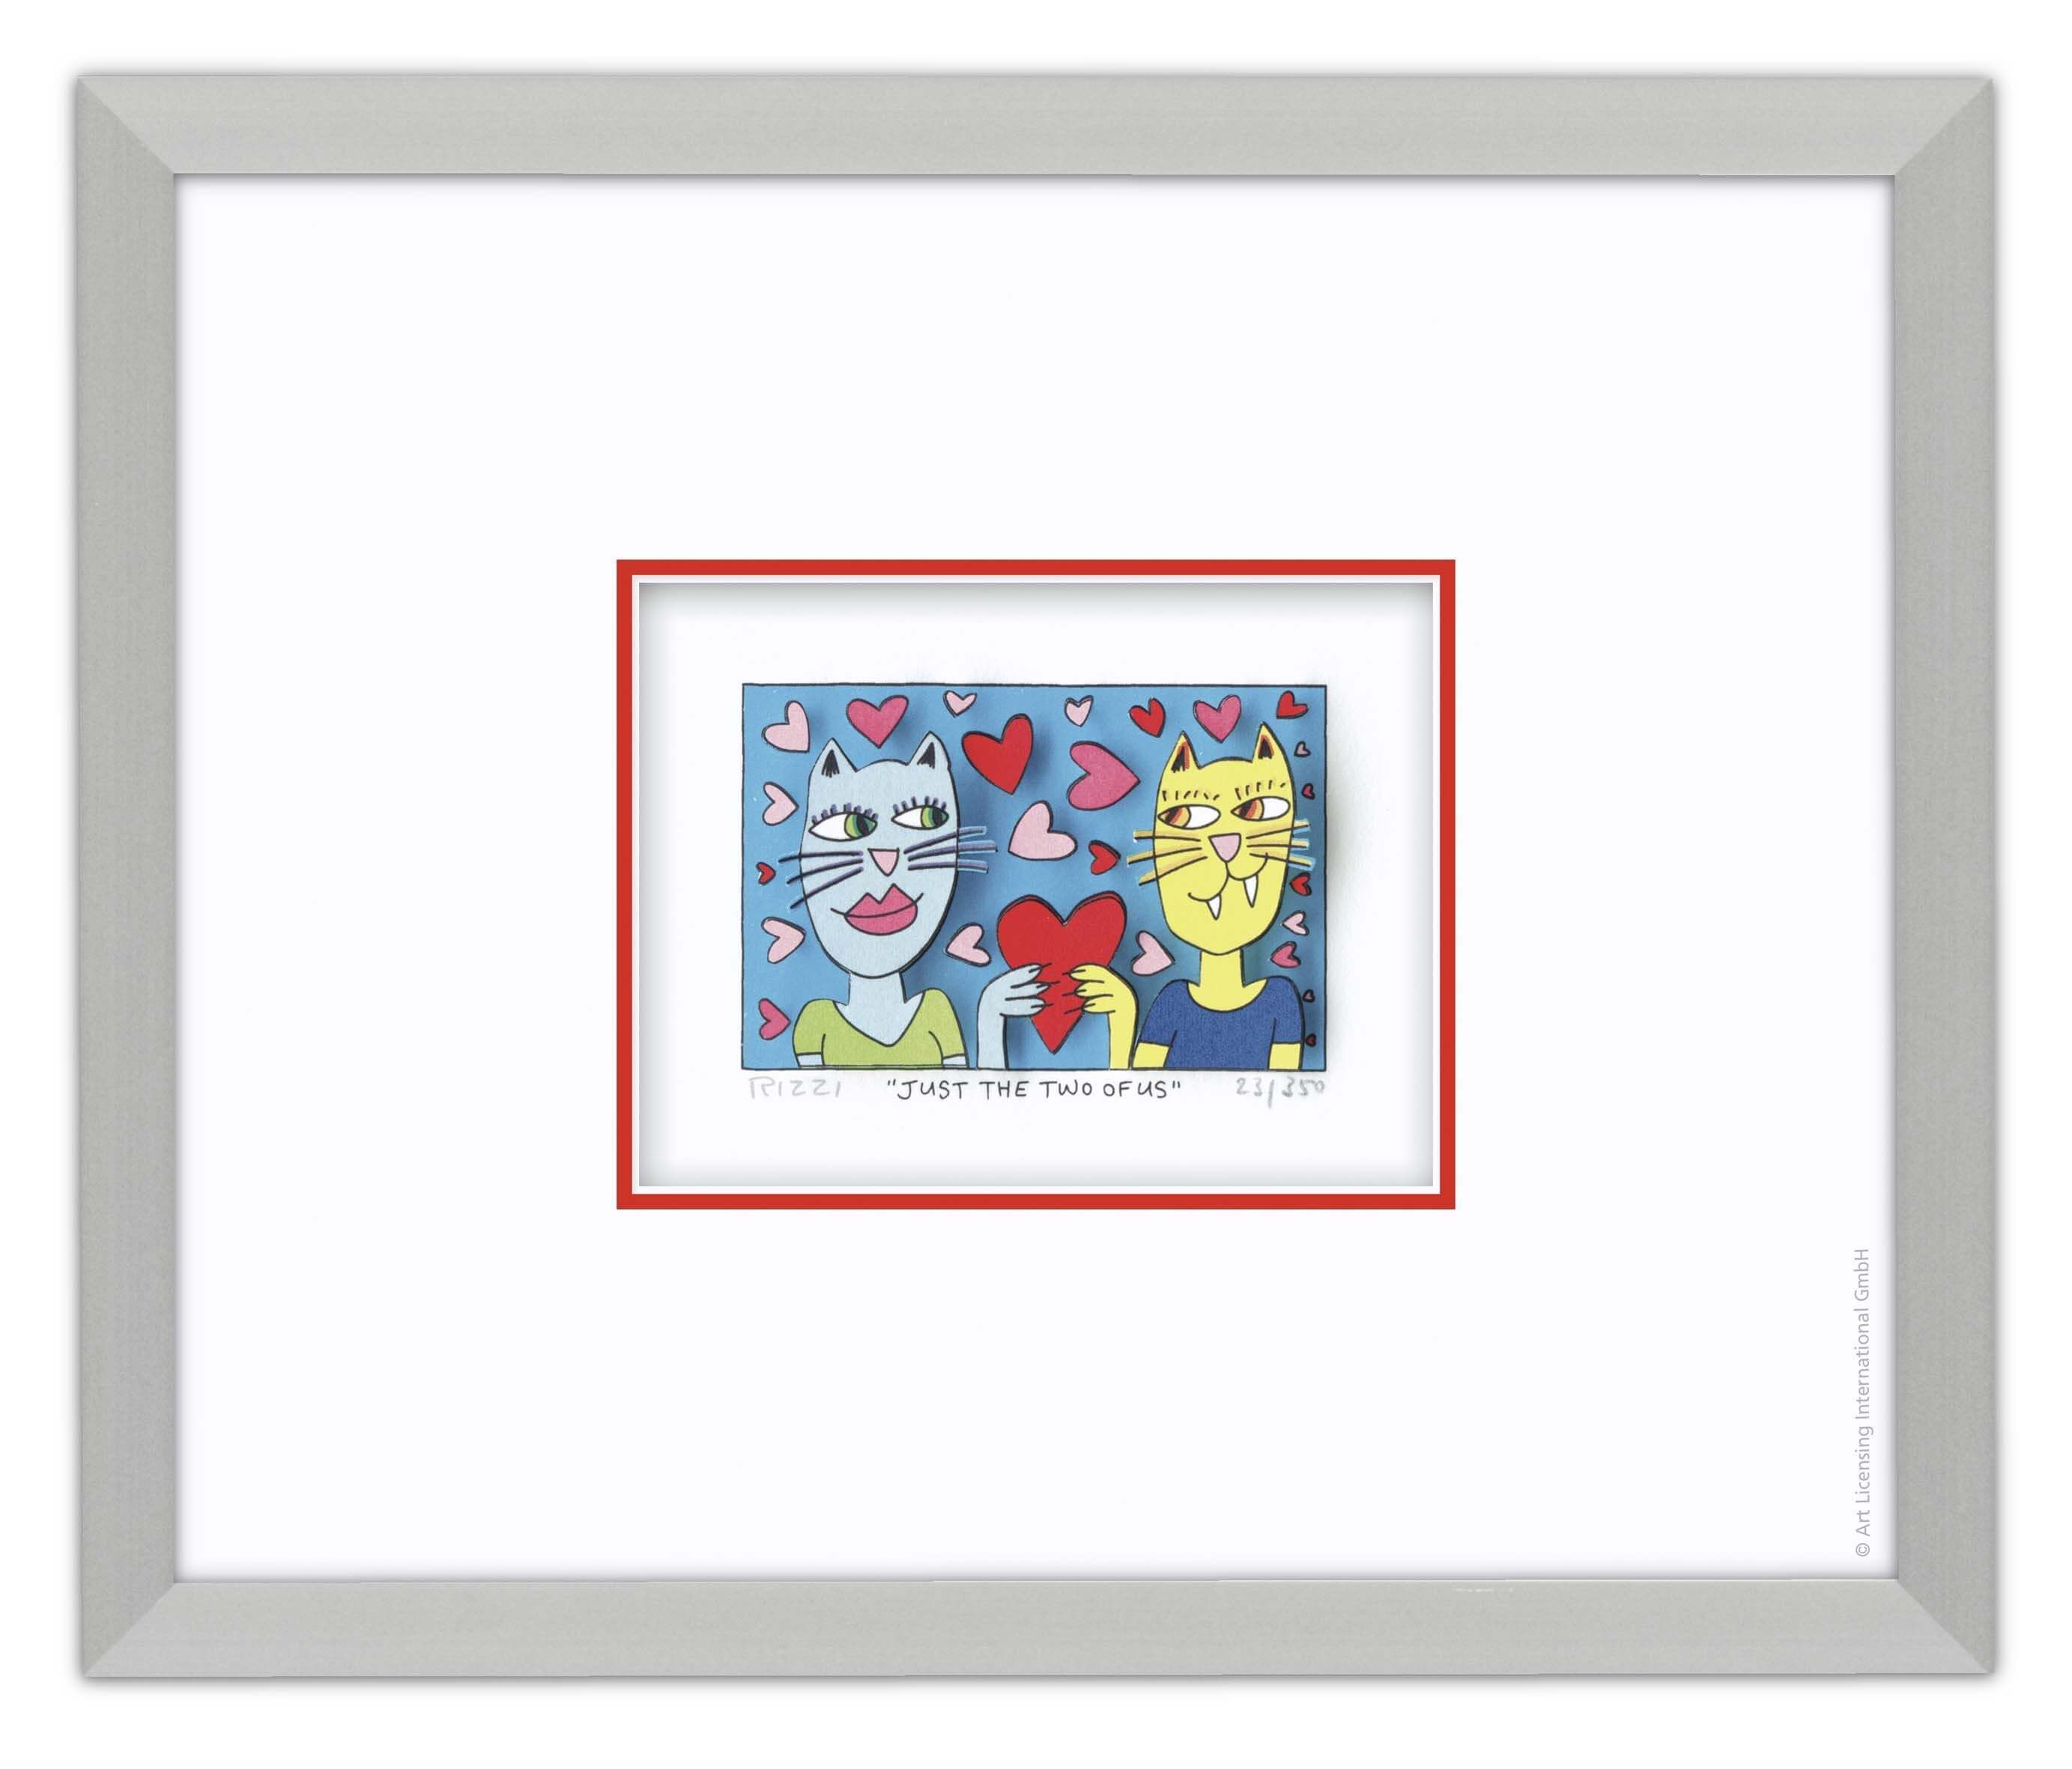 James Rizzi: Just The Two Of Us